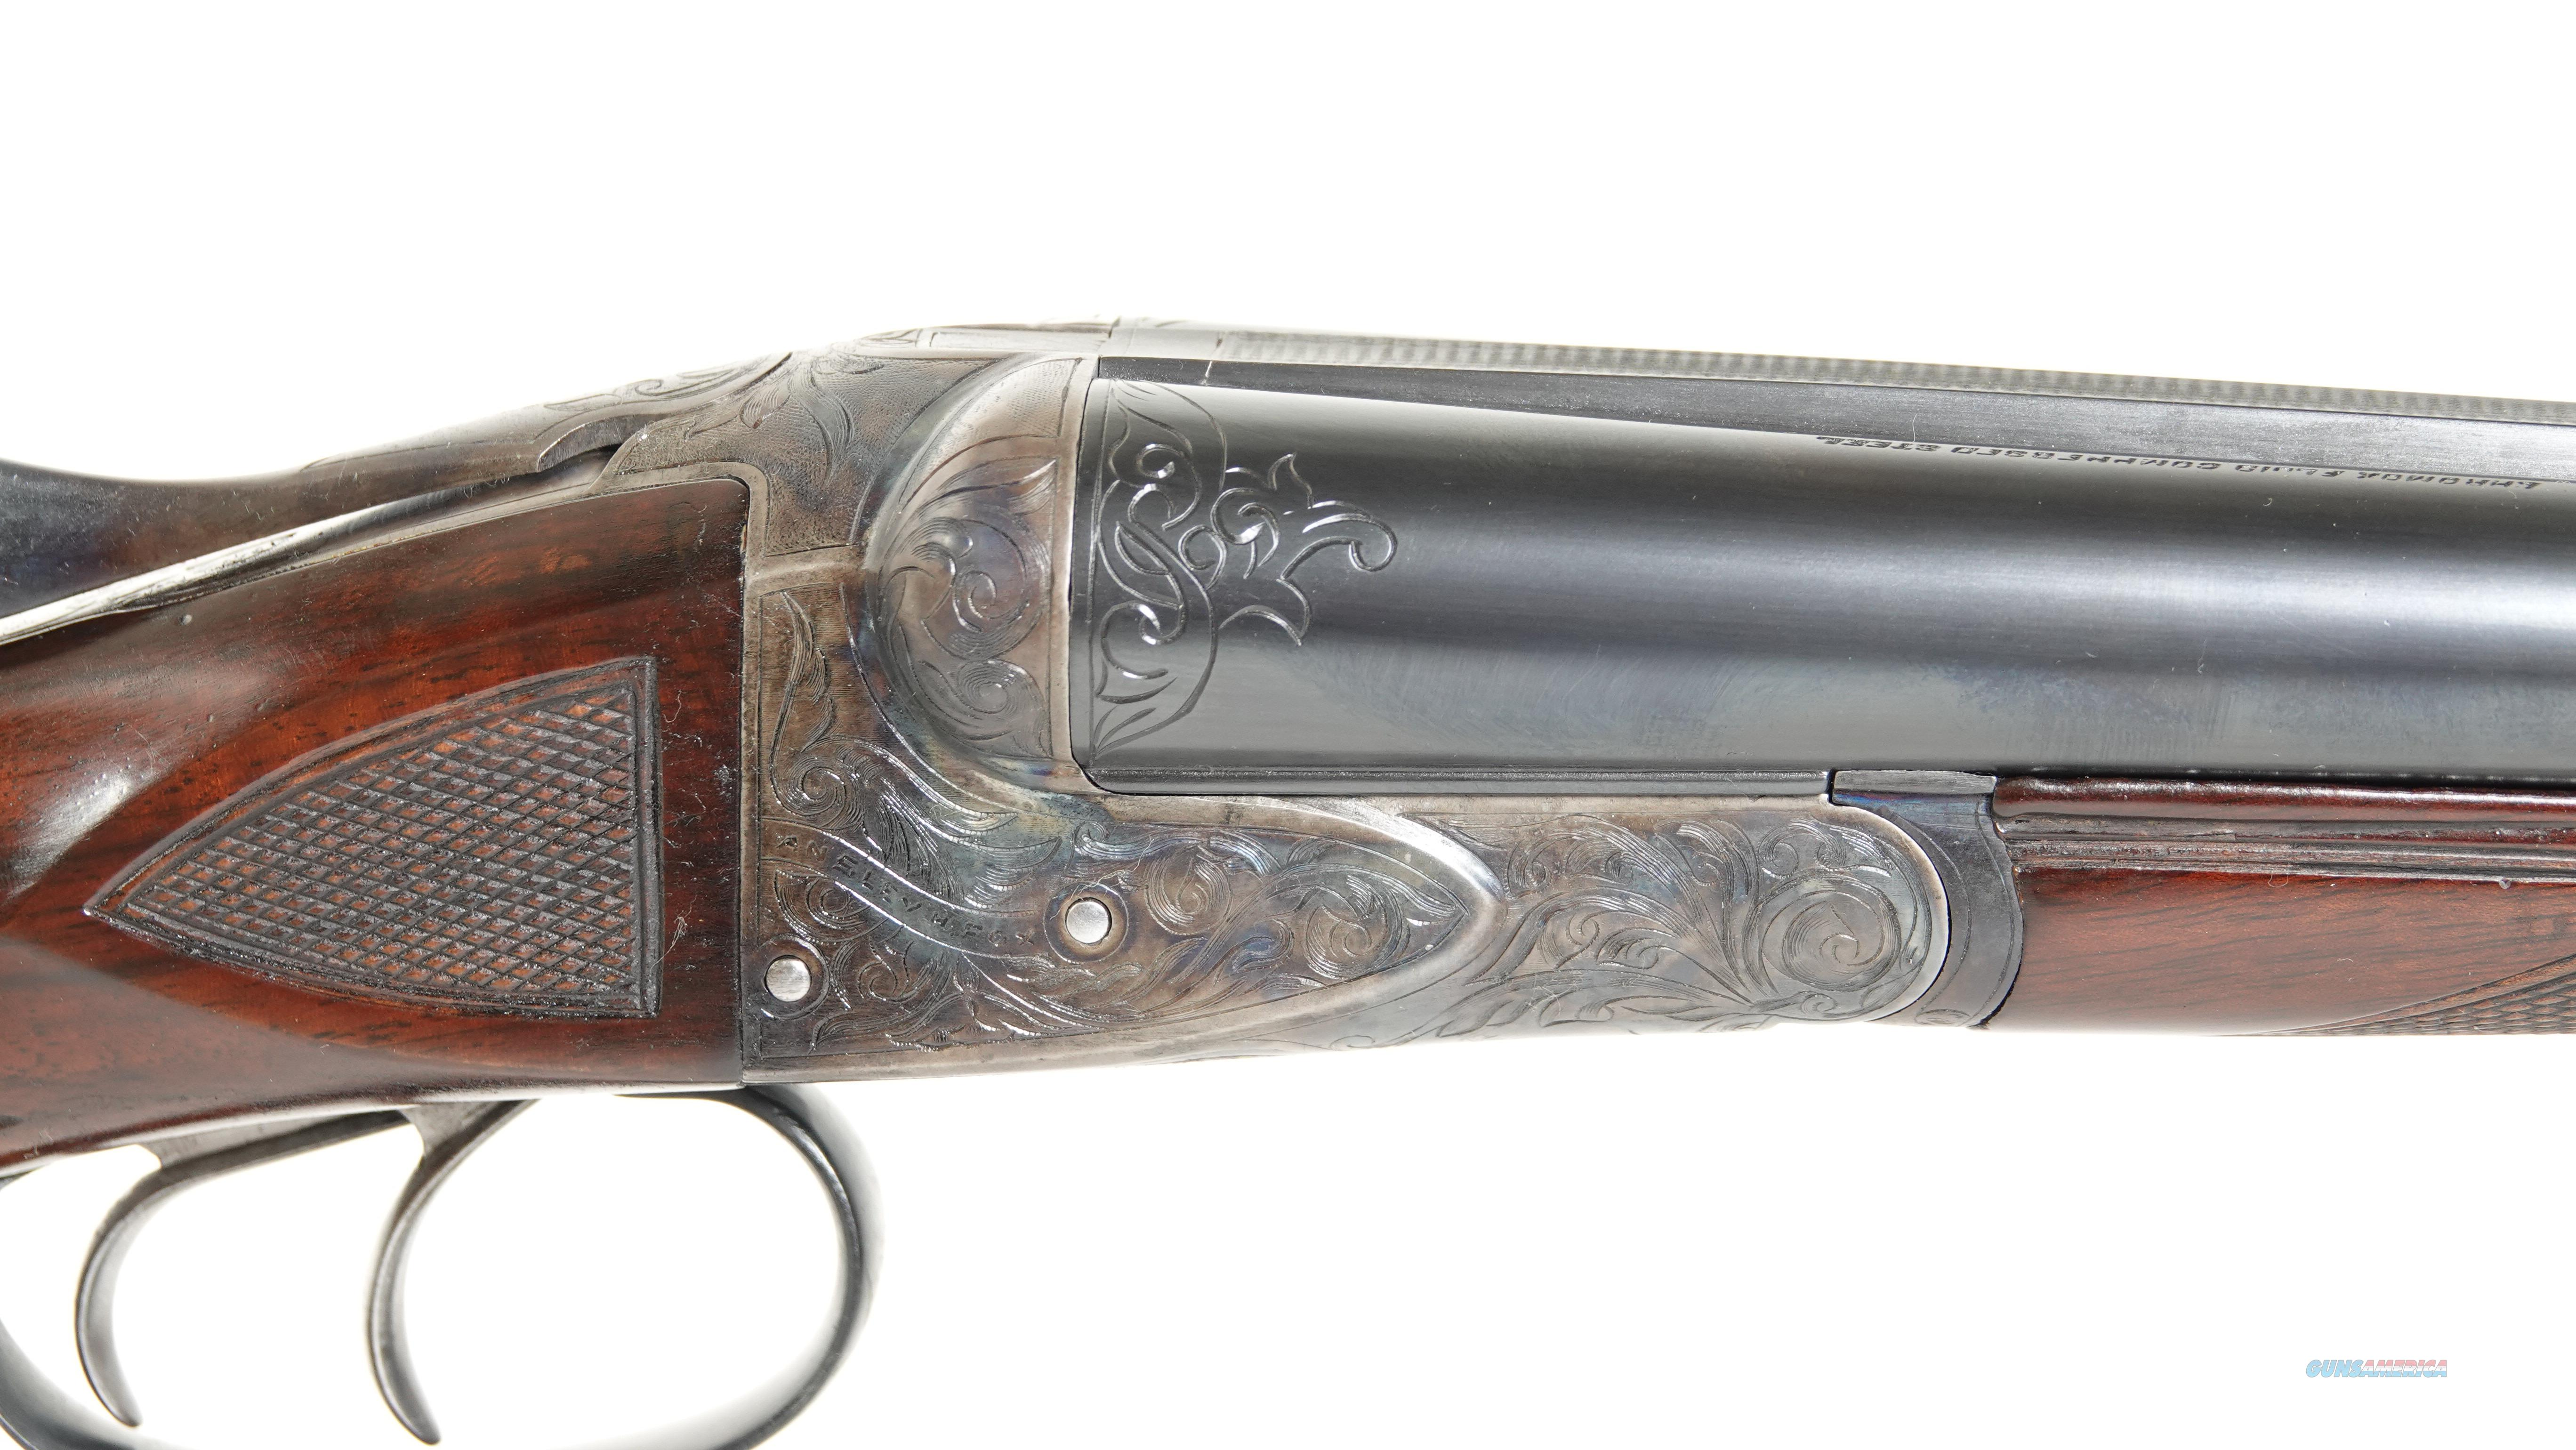 "A.H. Fox - BE, Philadelphia, Two Barrel Set, 16ga. 28"" IM/F & 26"" M/F  Guns > Shotguns > Fox Shotguns"